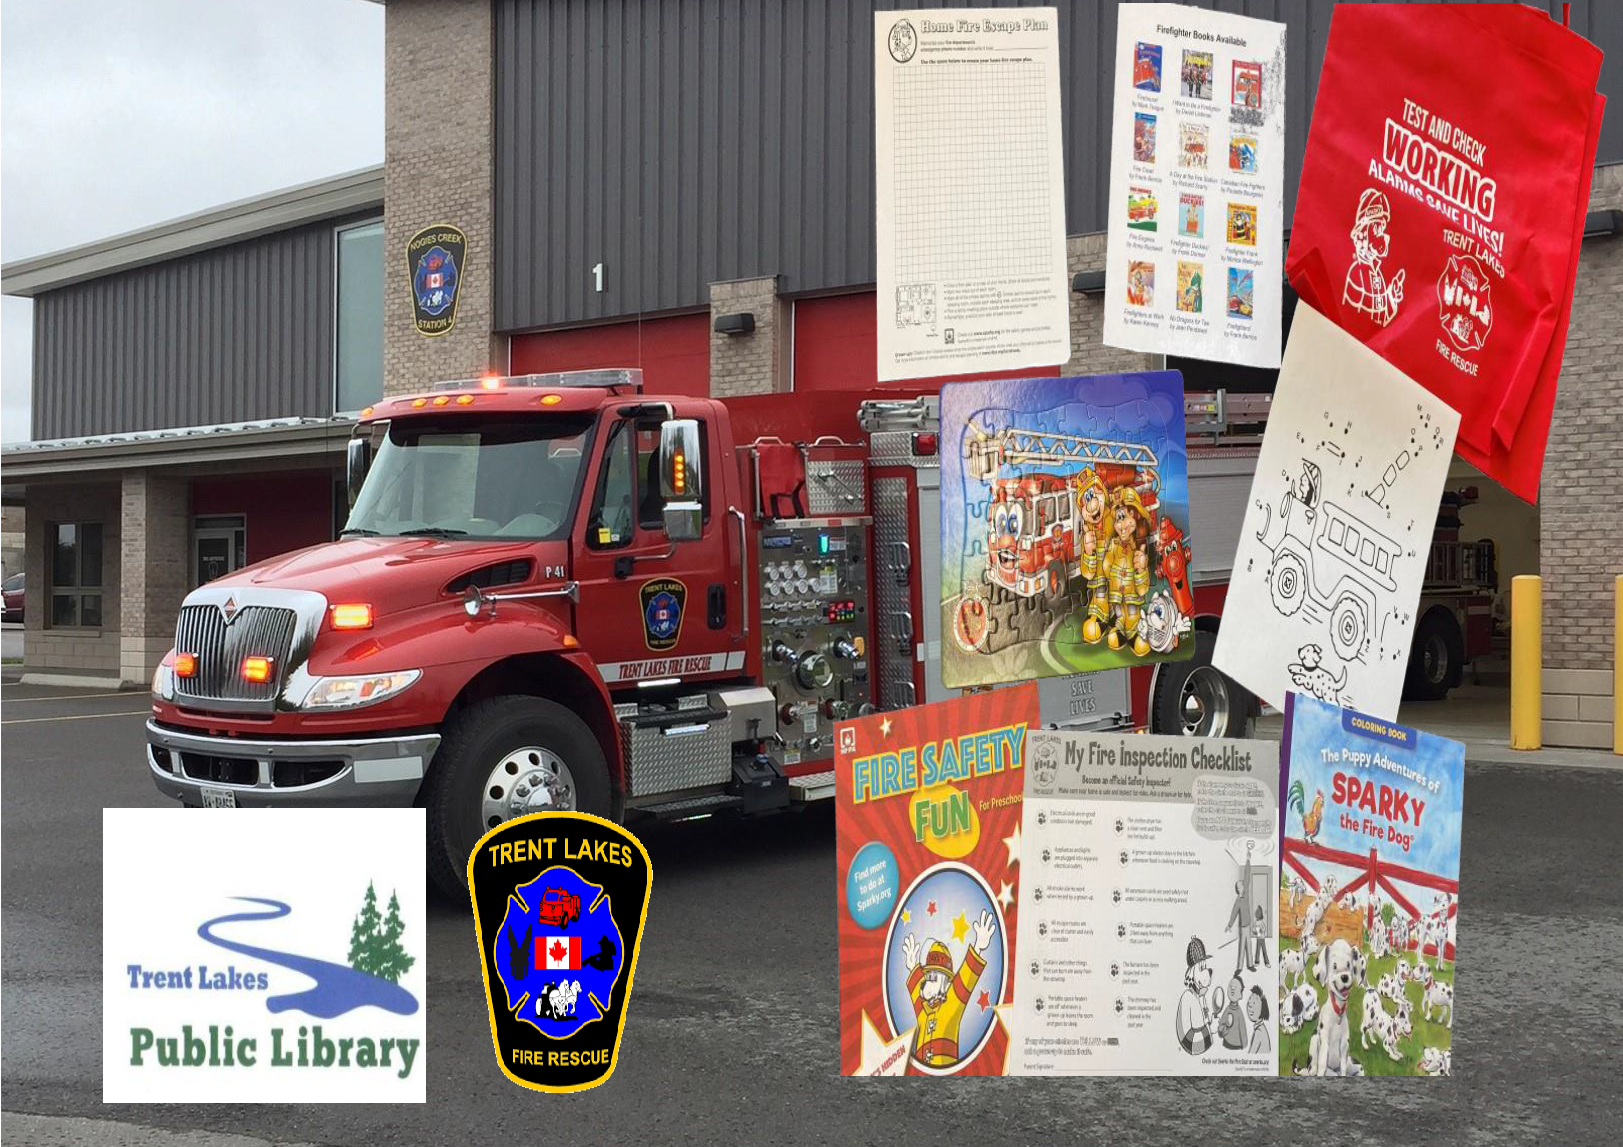 kids fire education items superimposed over a fire truck